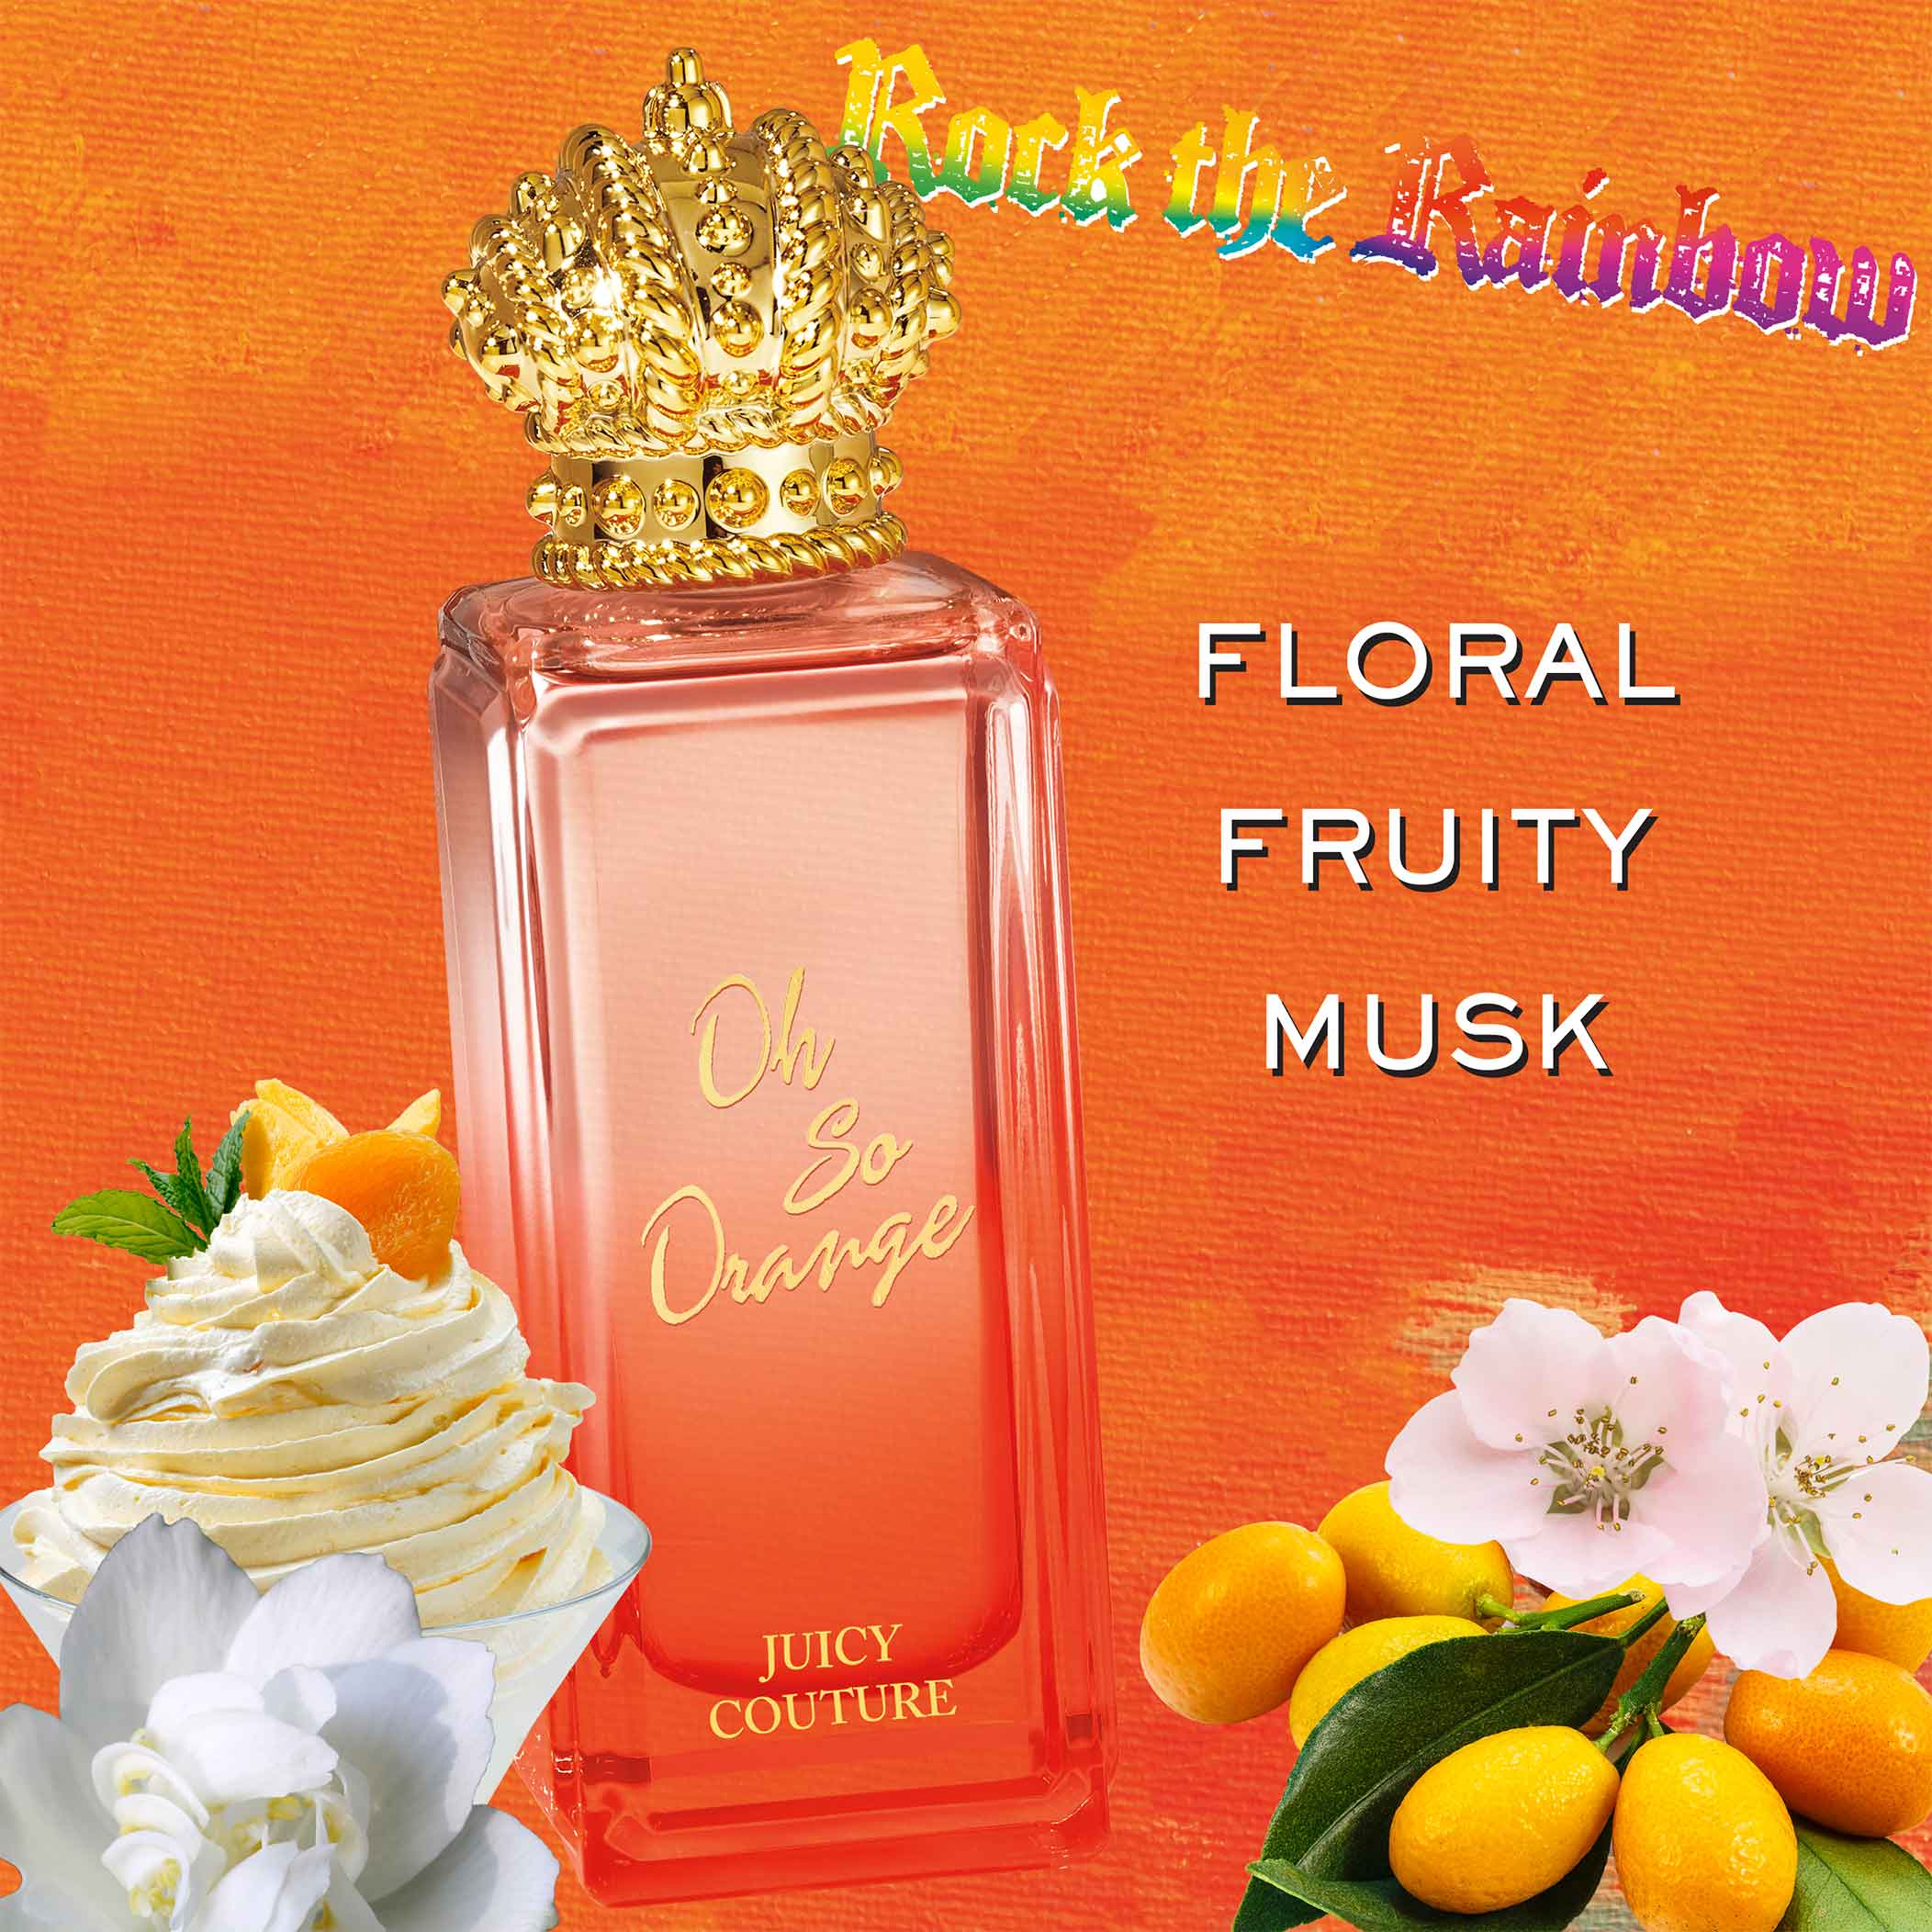 Floral, Fruity, Musk